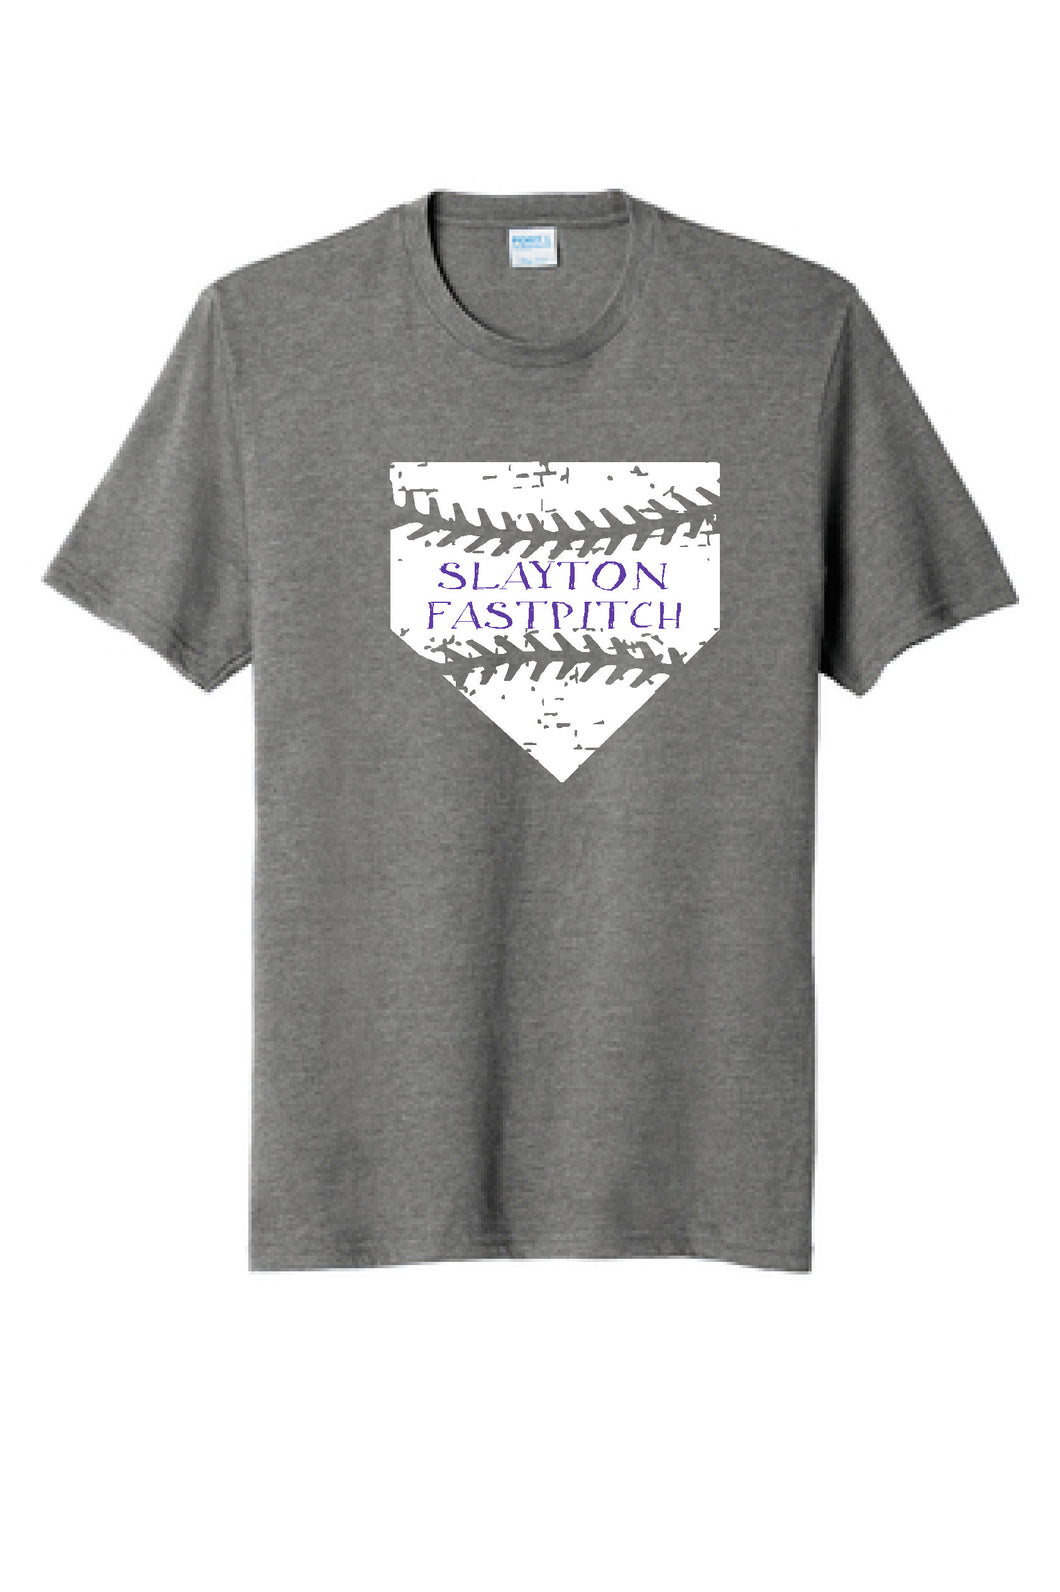 Slayton Fastpitch Softball Port & Co.  T-Shirt